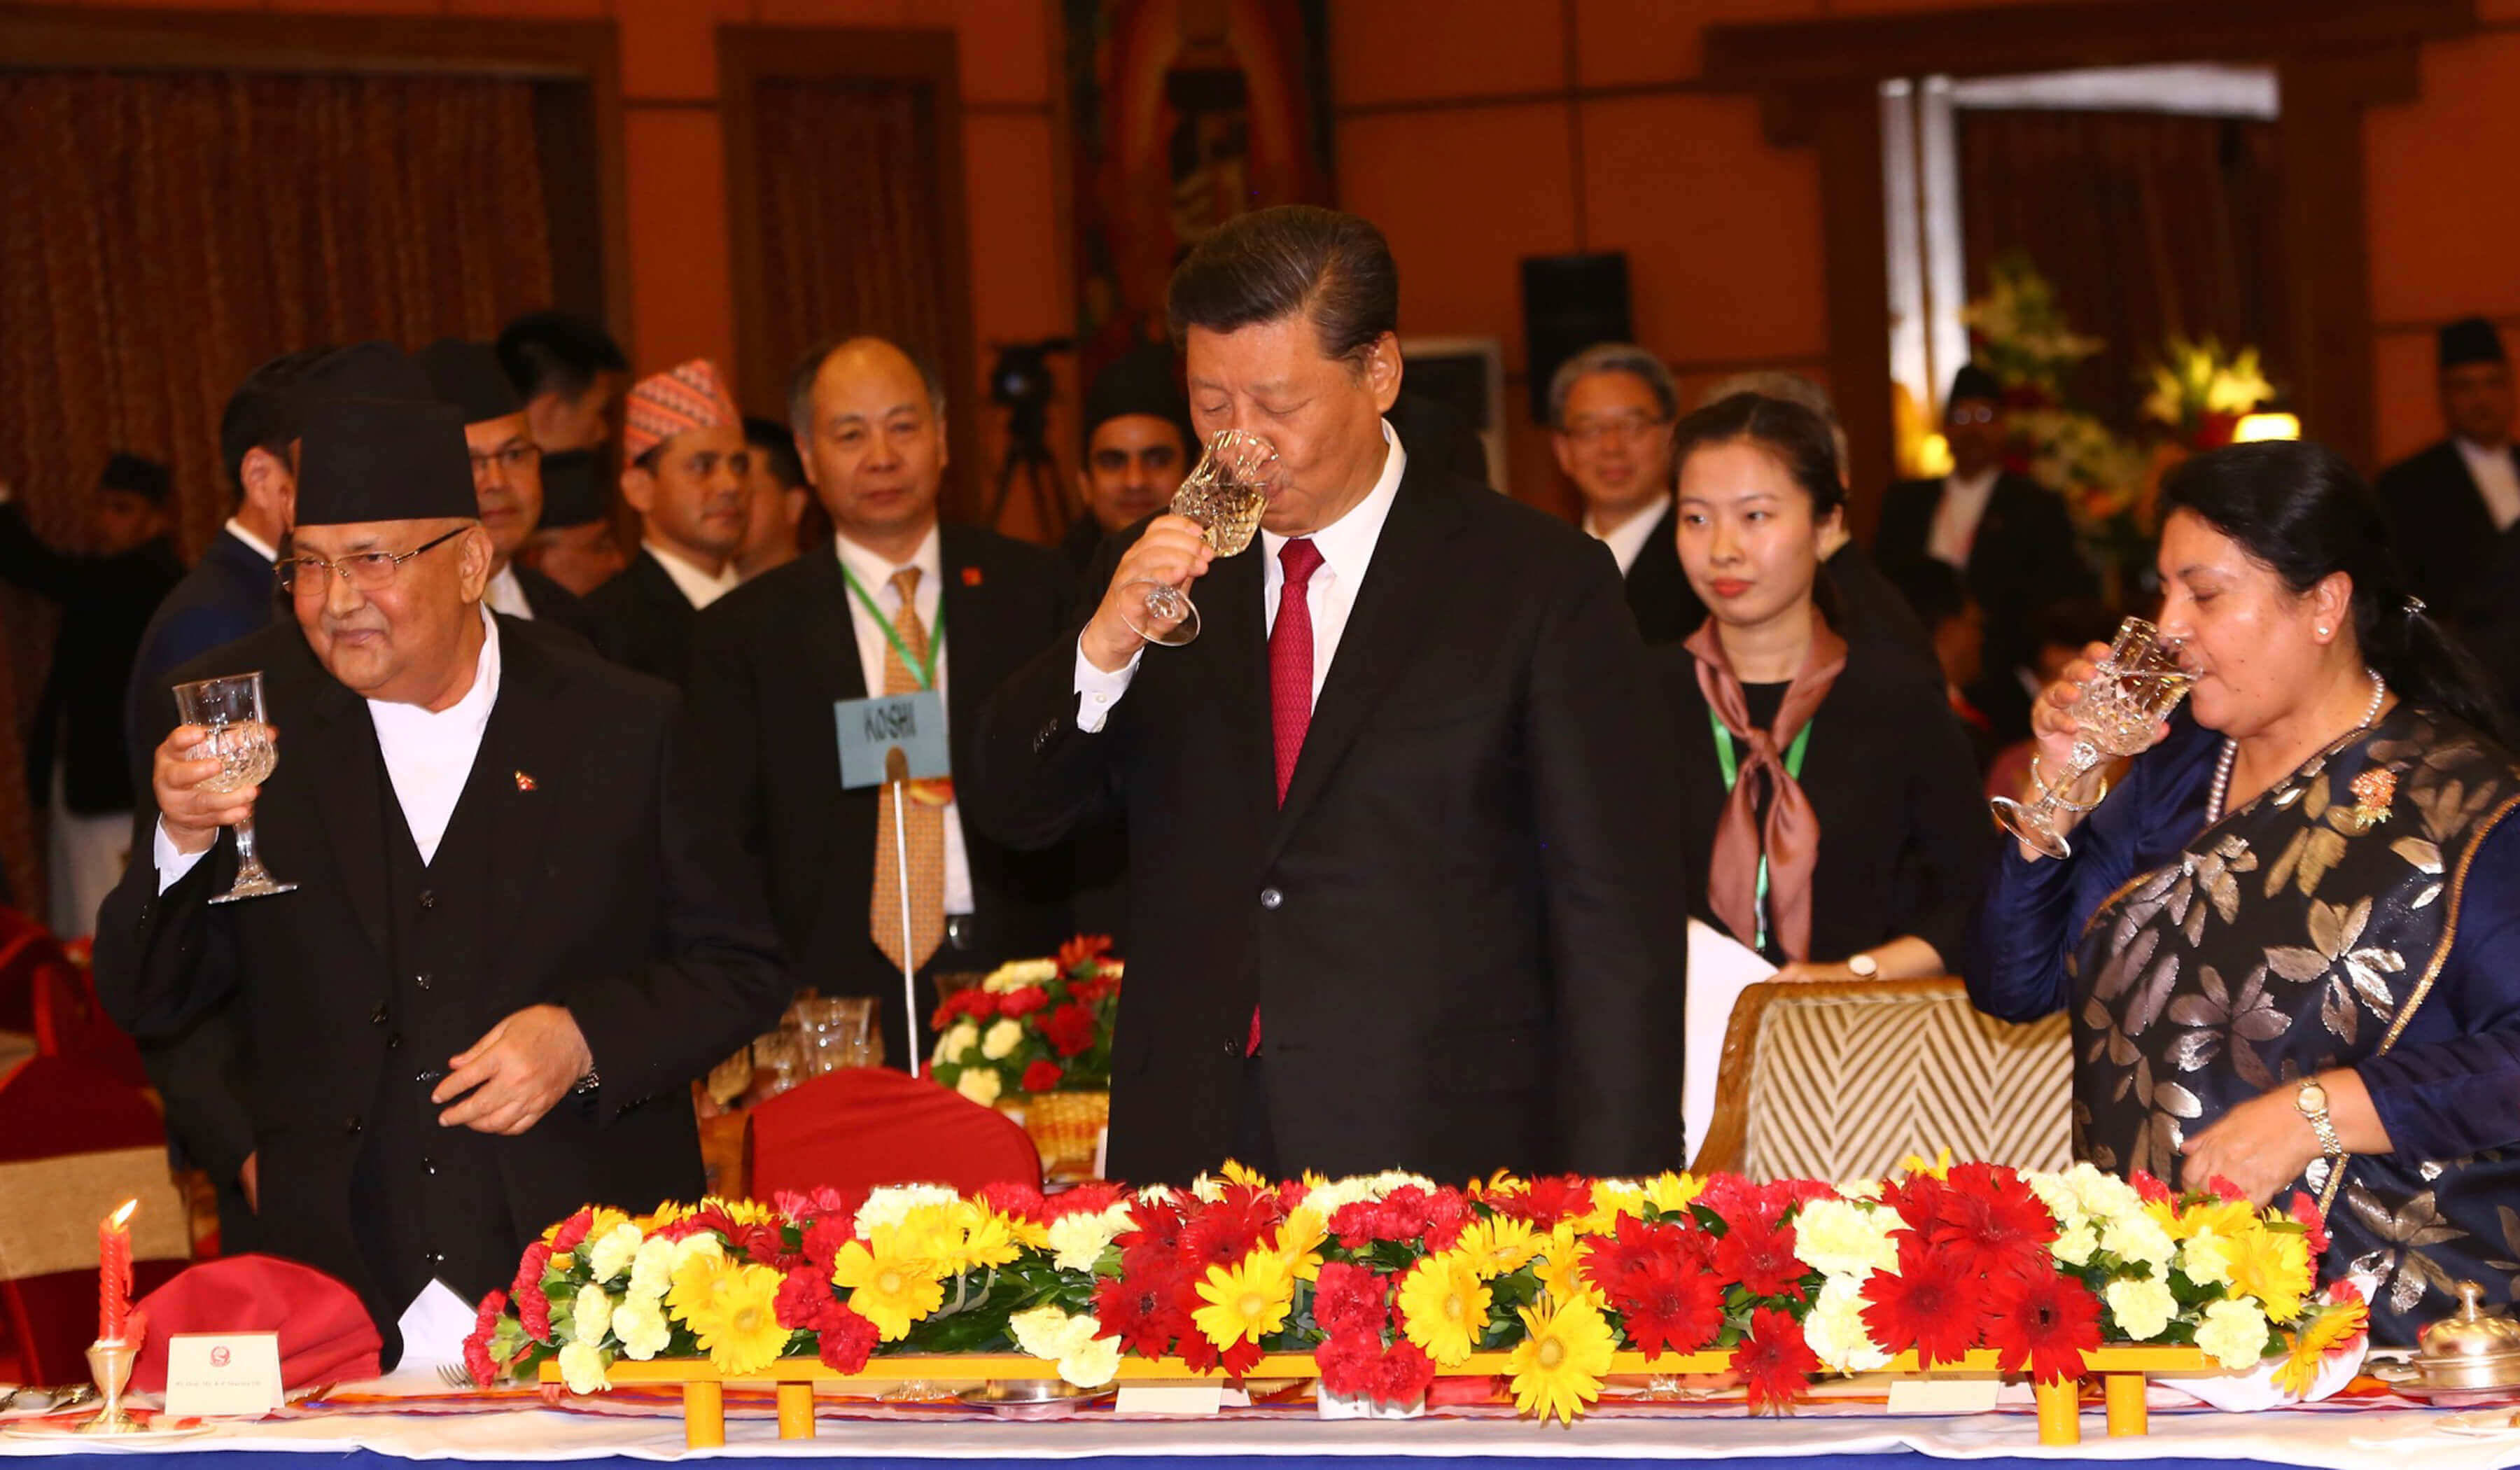 Reception for Xi